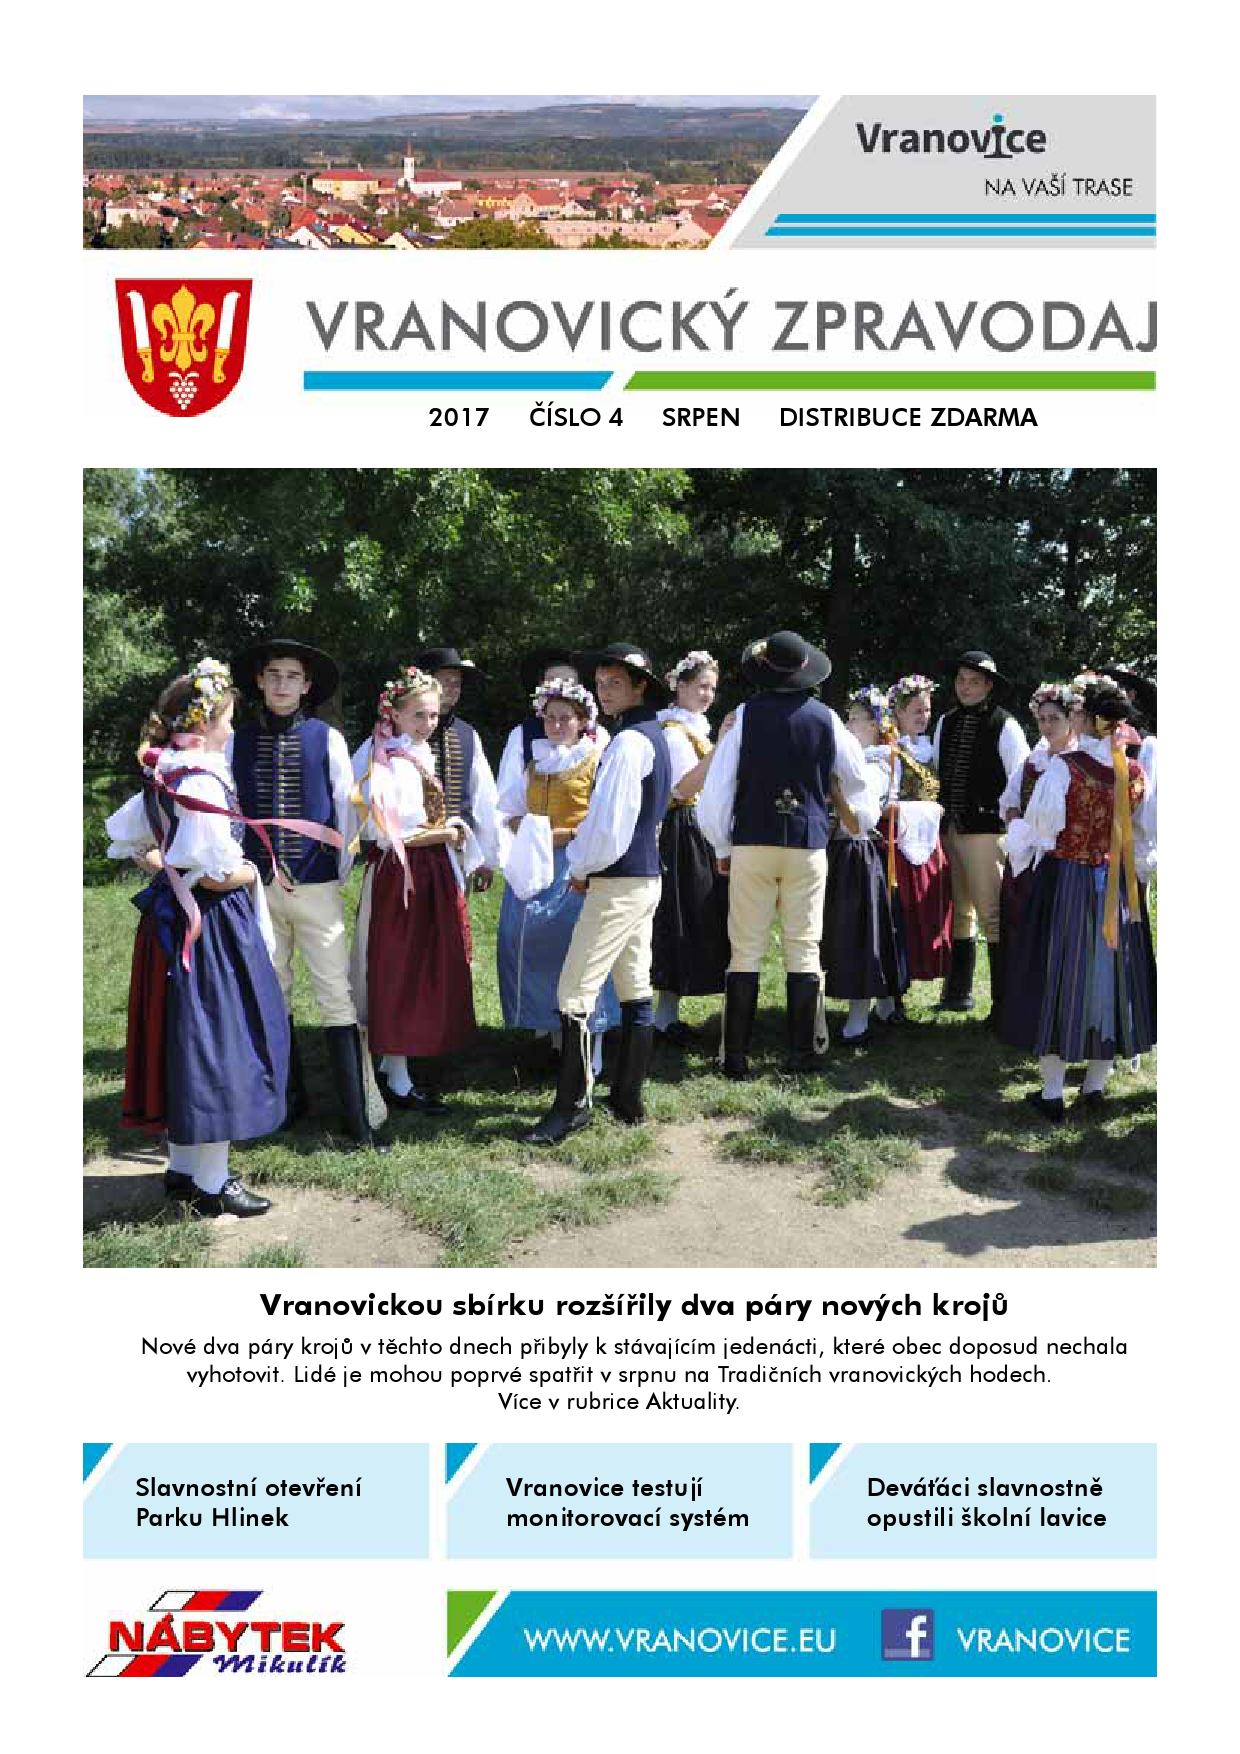 VranoviceZpravodaj0817_web(COPY).pdf-000001